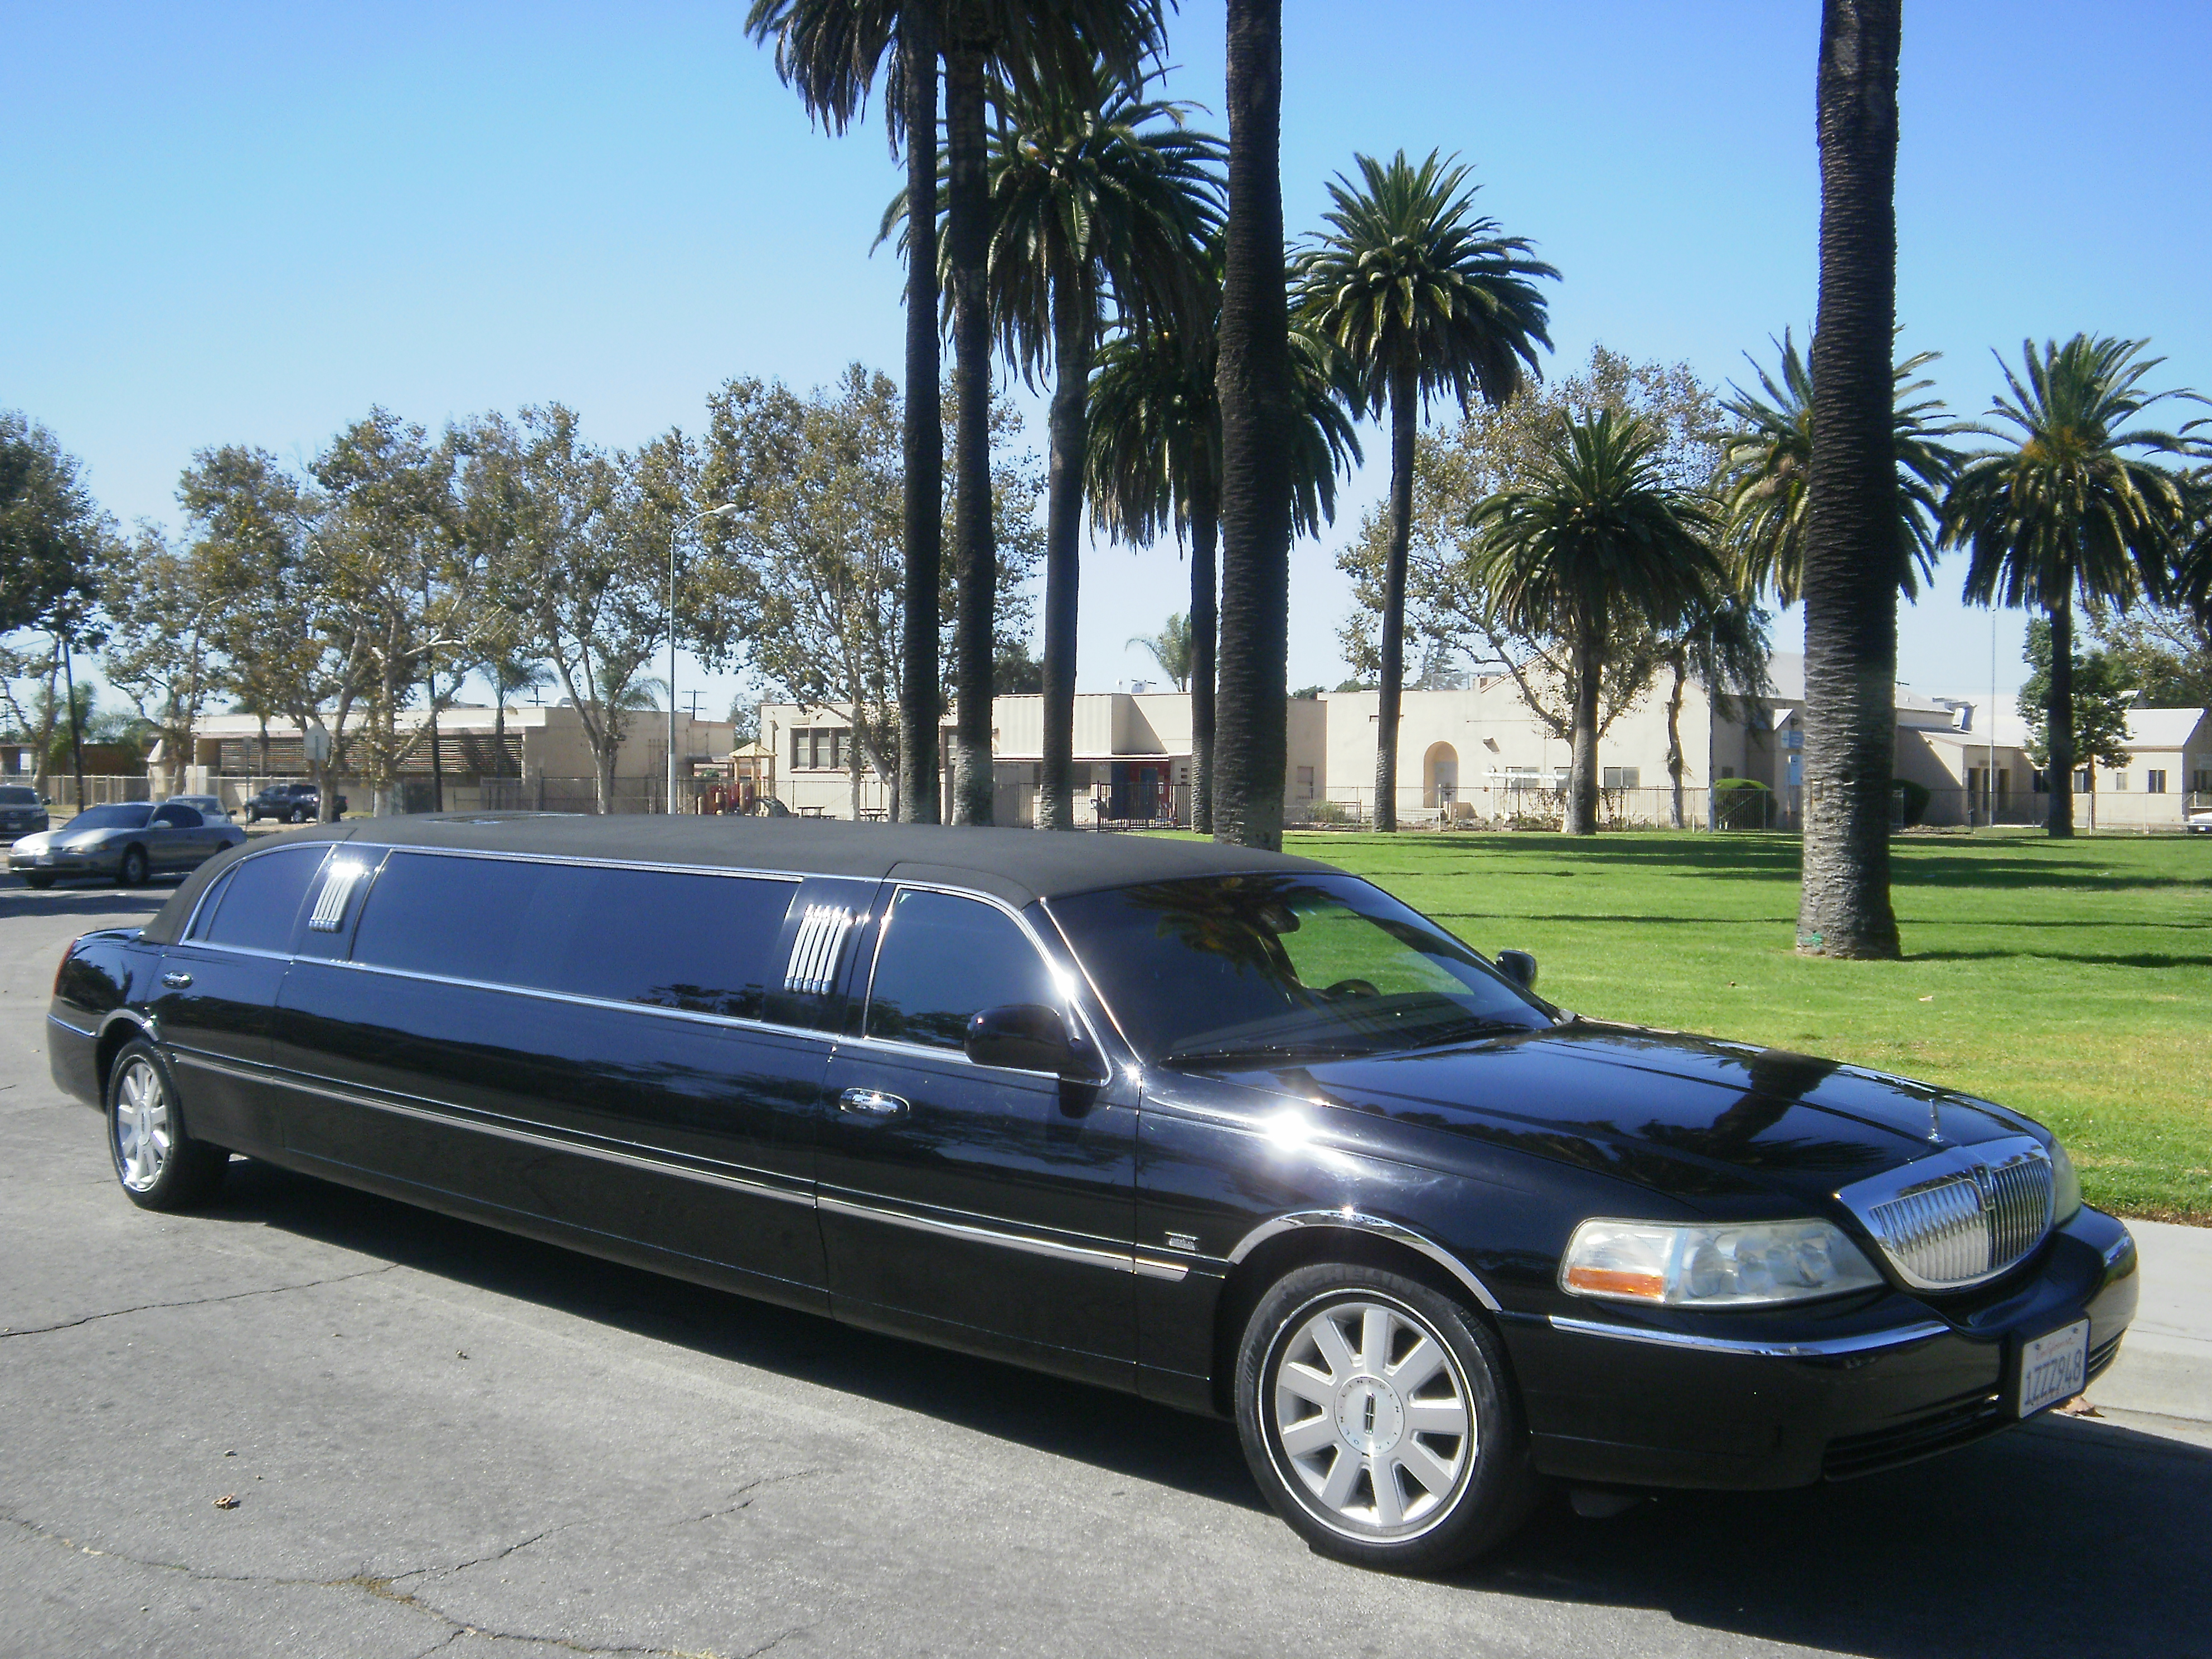 Black Lincoln Town Car 120 Inch Limousine 1076